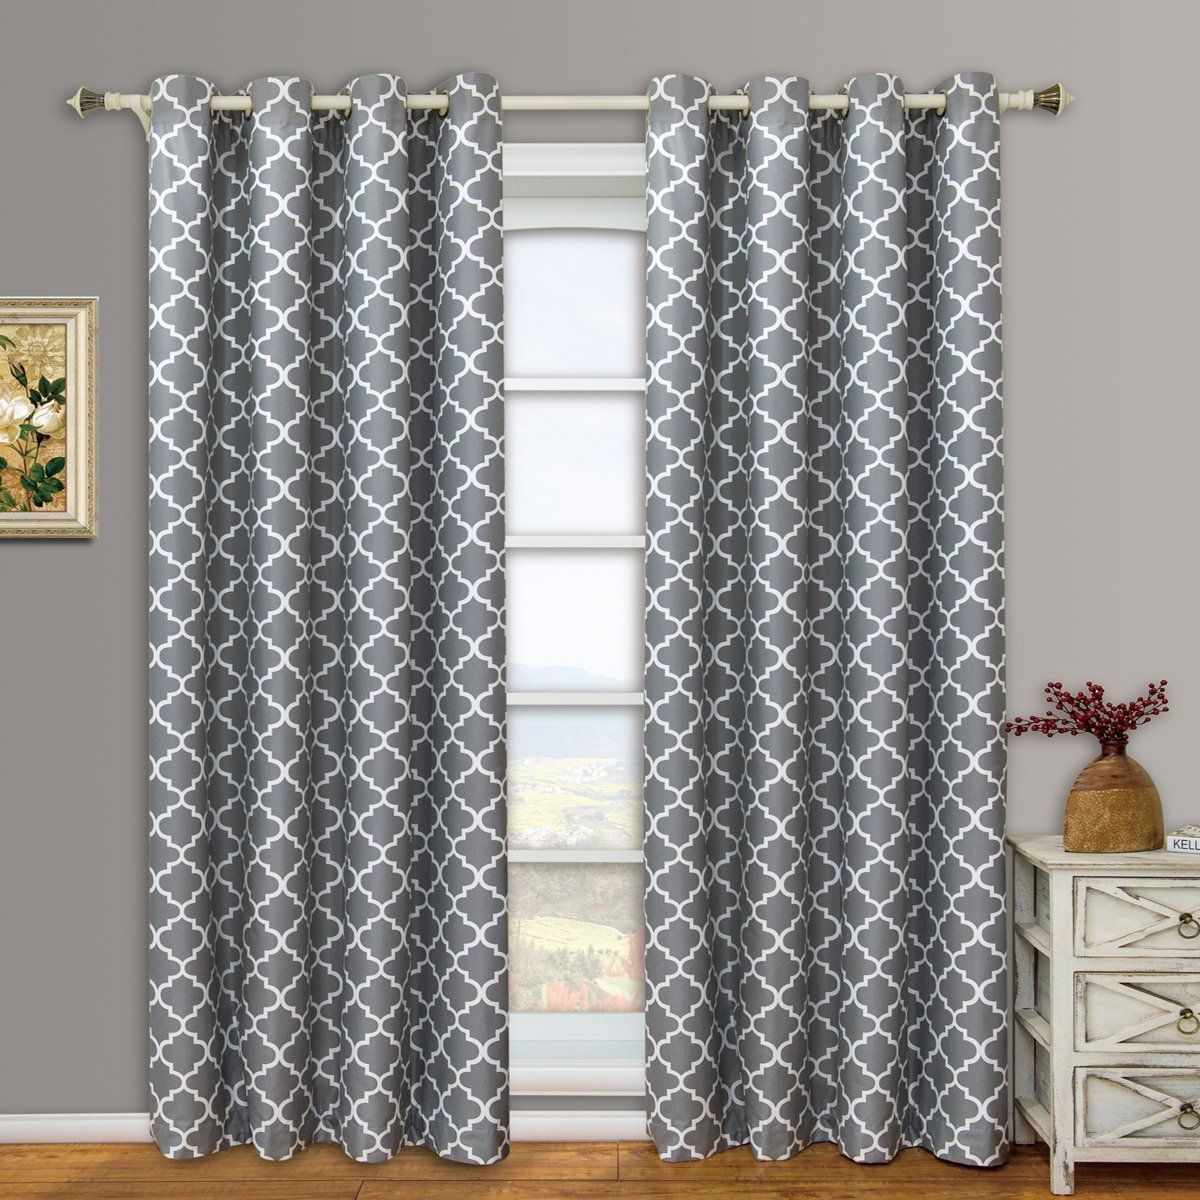 curtain divider feminine door room jcpenney double insulated japanese amazon shower rods curtains